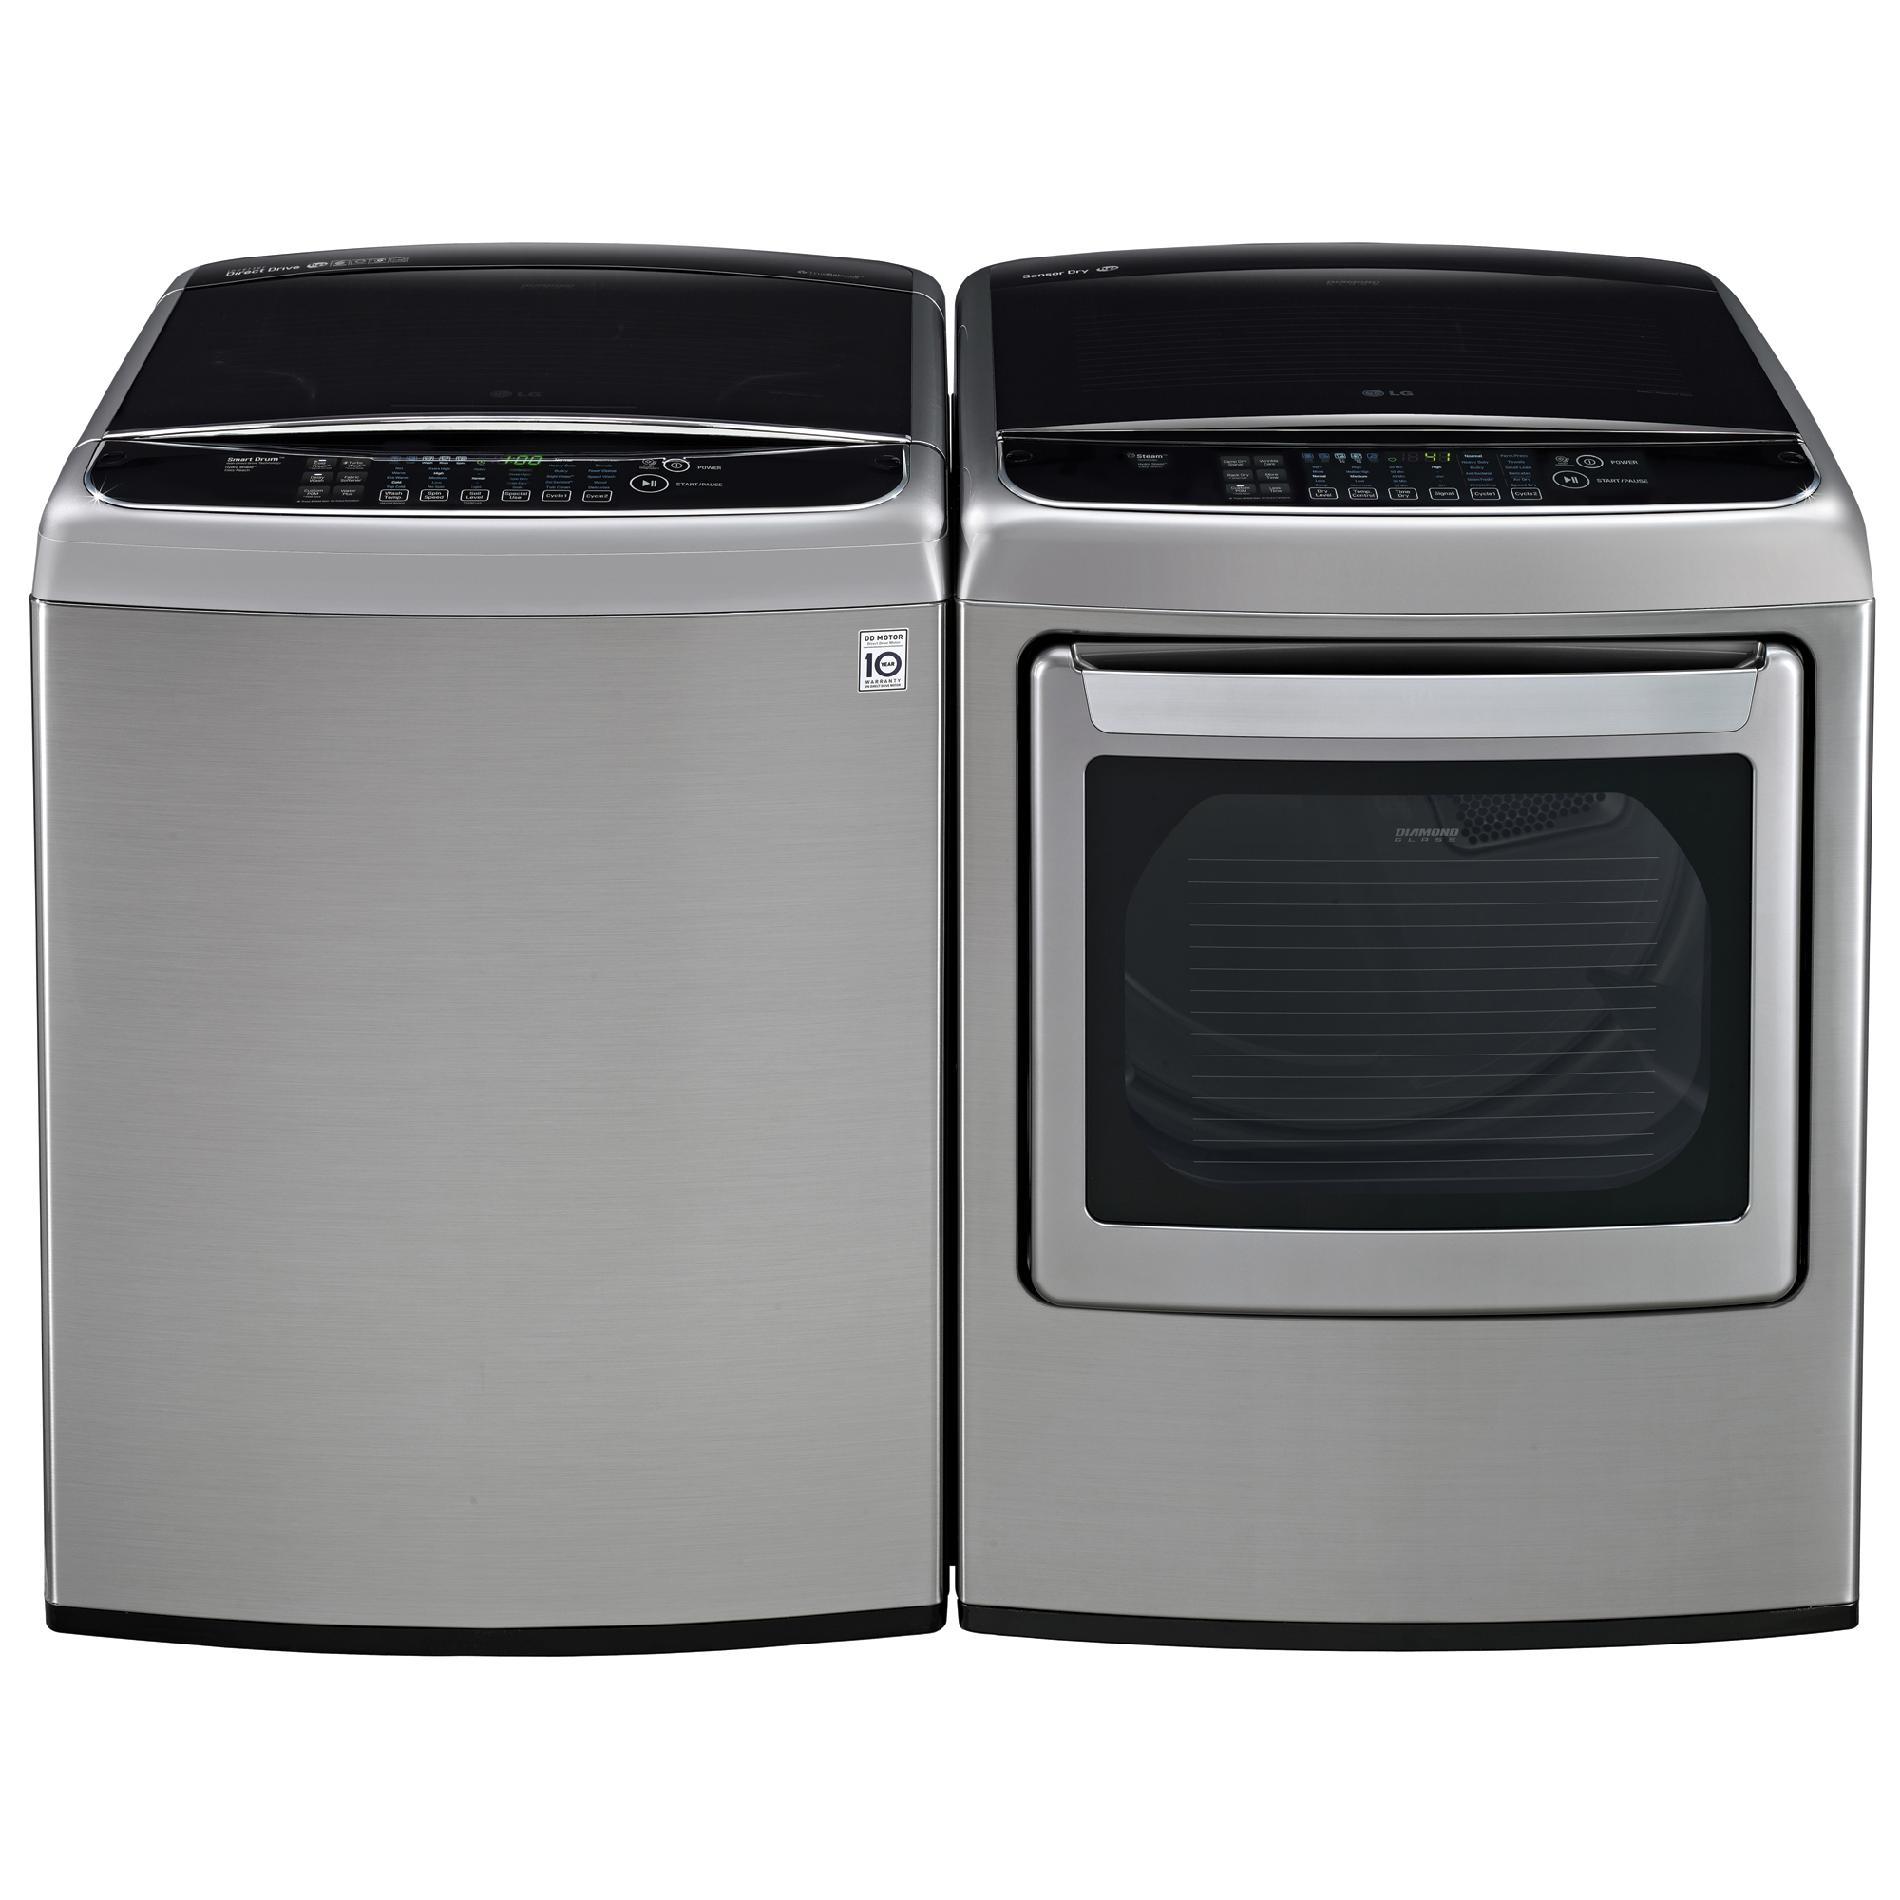 LG WT1701CV 4.9 cu. ft. Top-Load Washer w/ TurboWash™